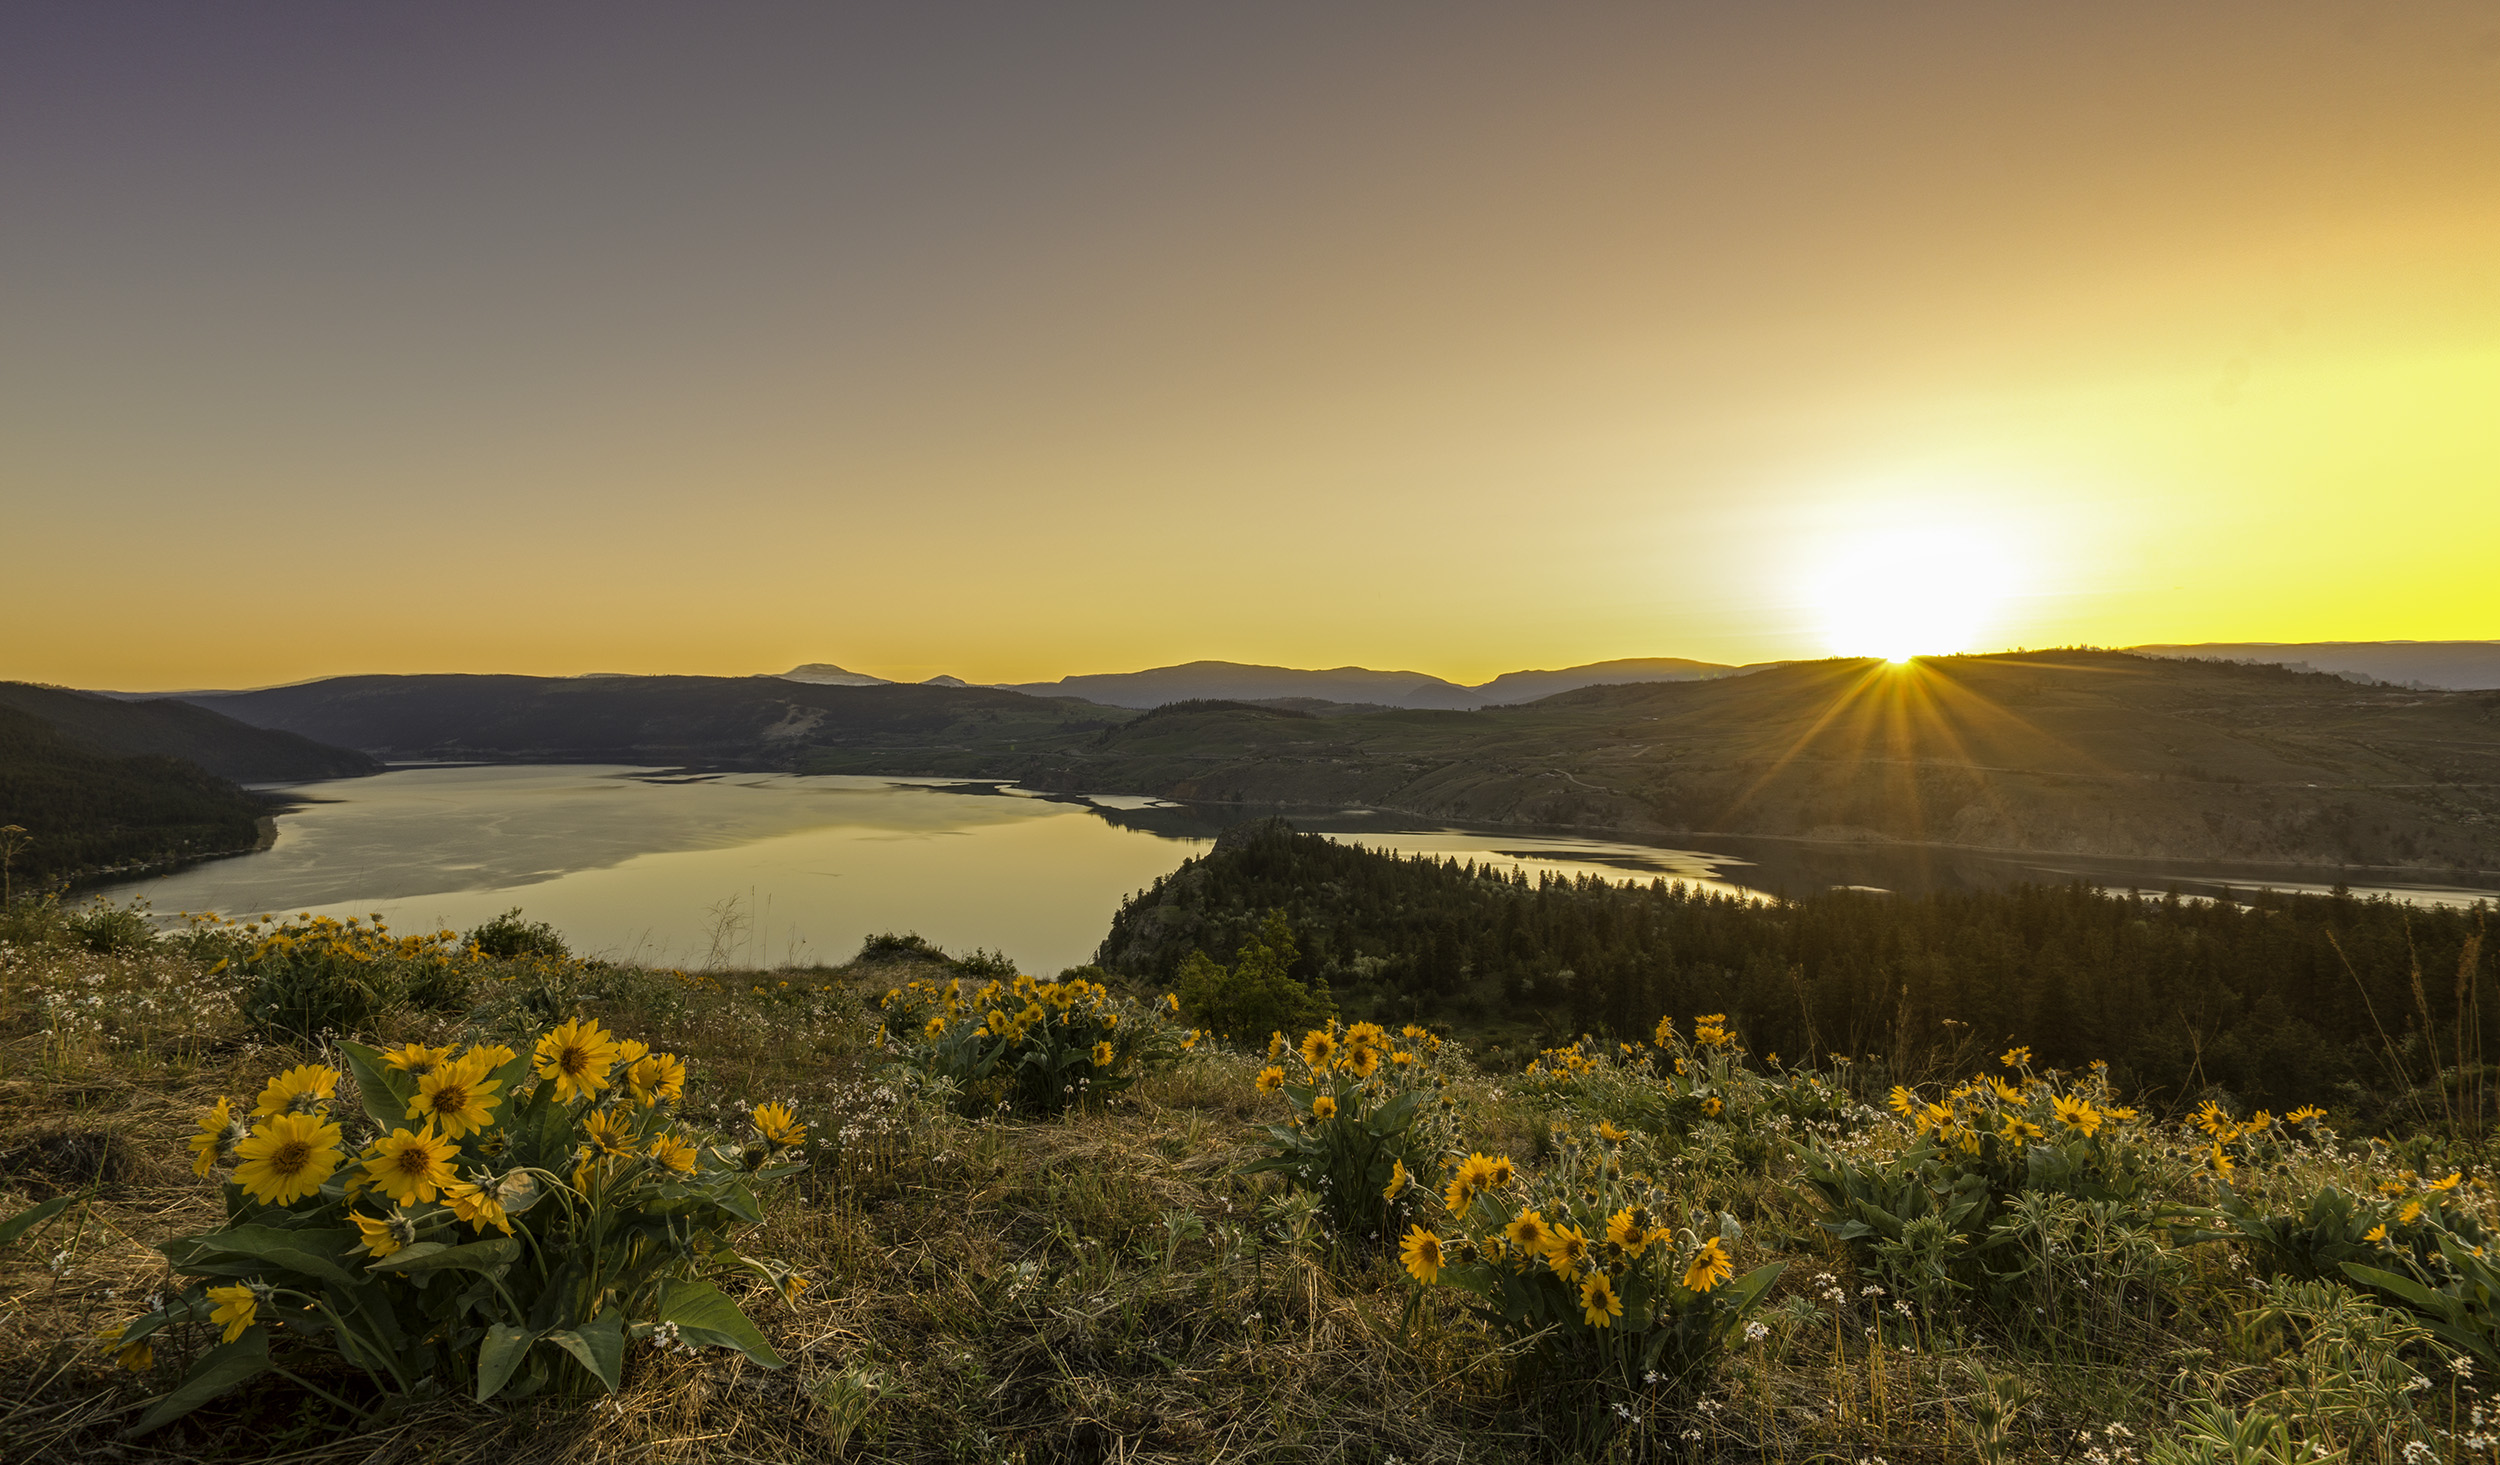 Spring Sunset at Kalamalka Lake, BC, Canada